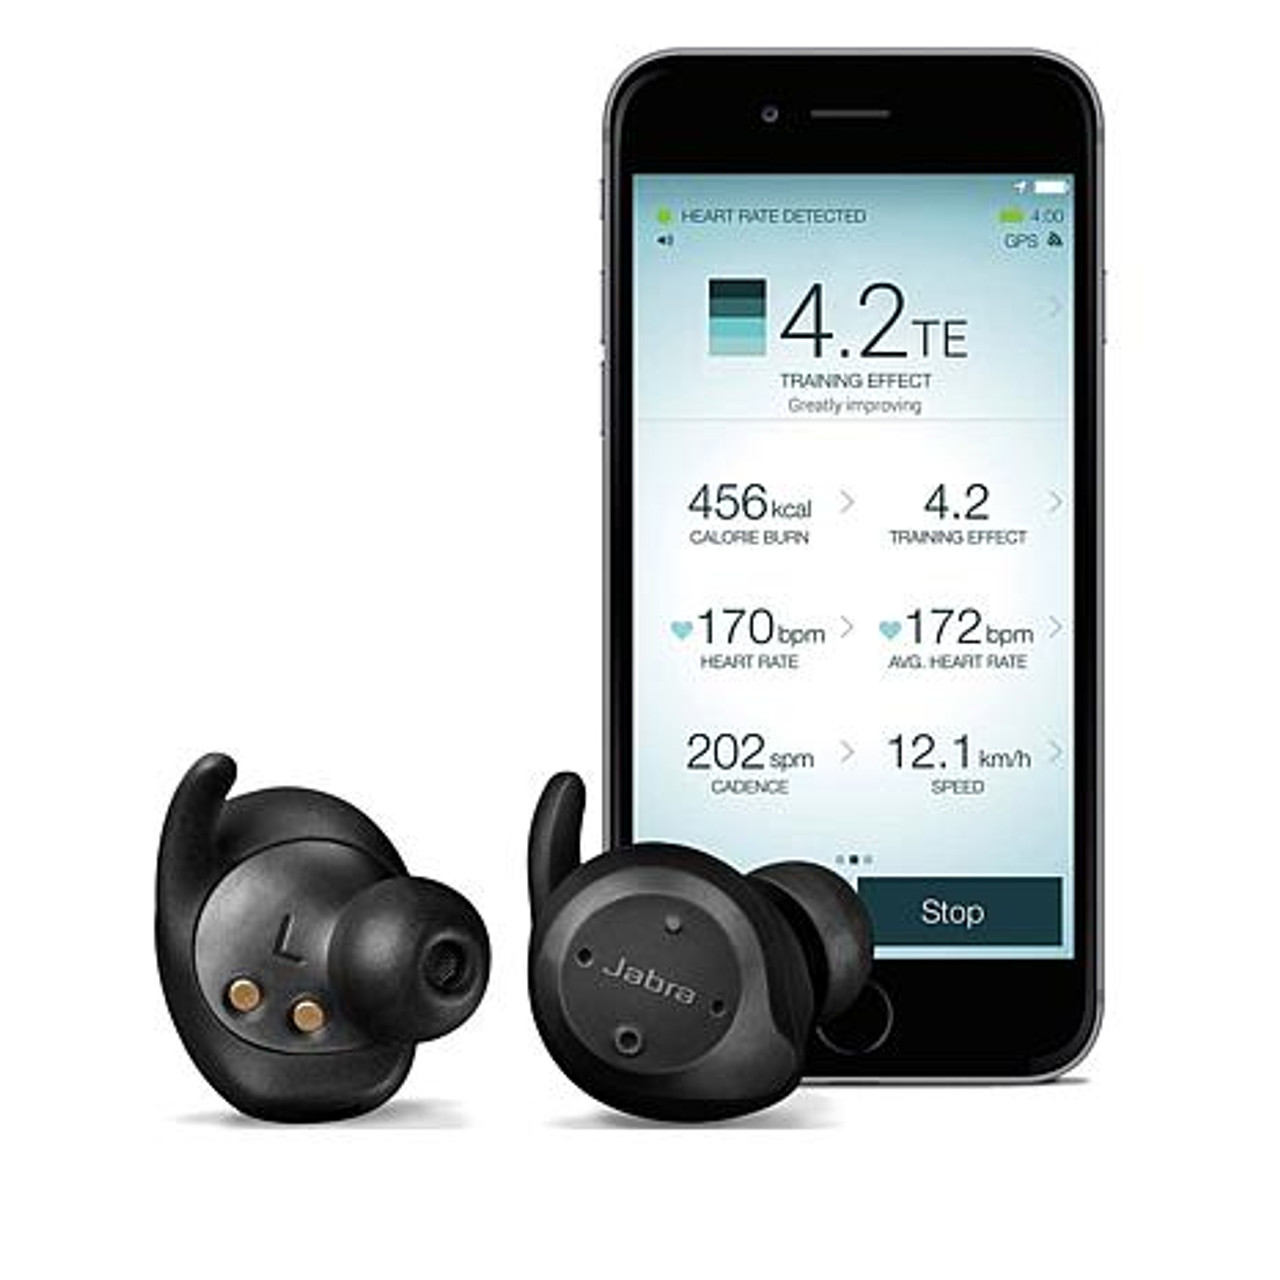 Jabra Wireless Earbuds Elite Sport Earbuds Bundle With Bonus Ac Adapter Bluetooth Cordless Water Dust Proof Earbuds For Android Or Apple Ios Smartphones 3yr Warranty 100 98600001 02 B 100 98600001 02 B